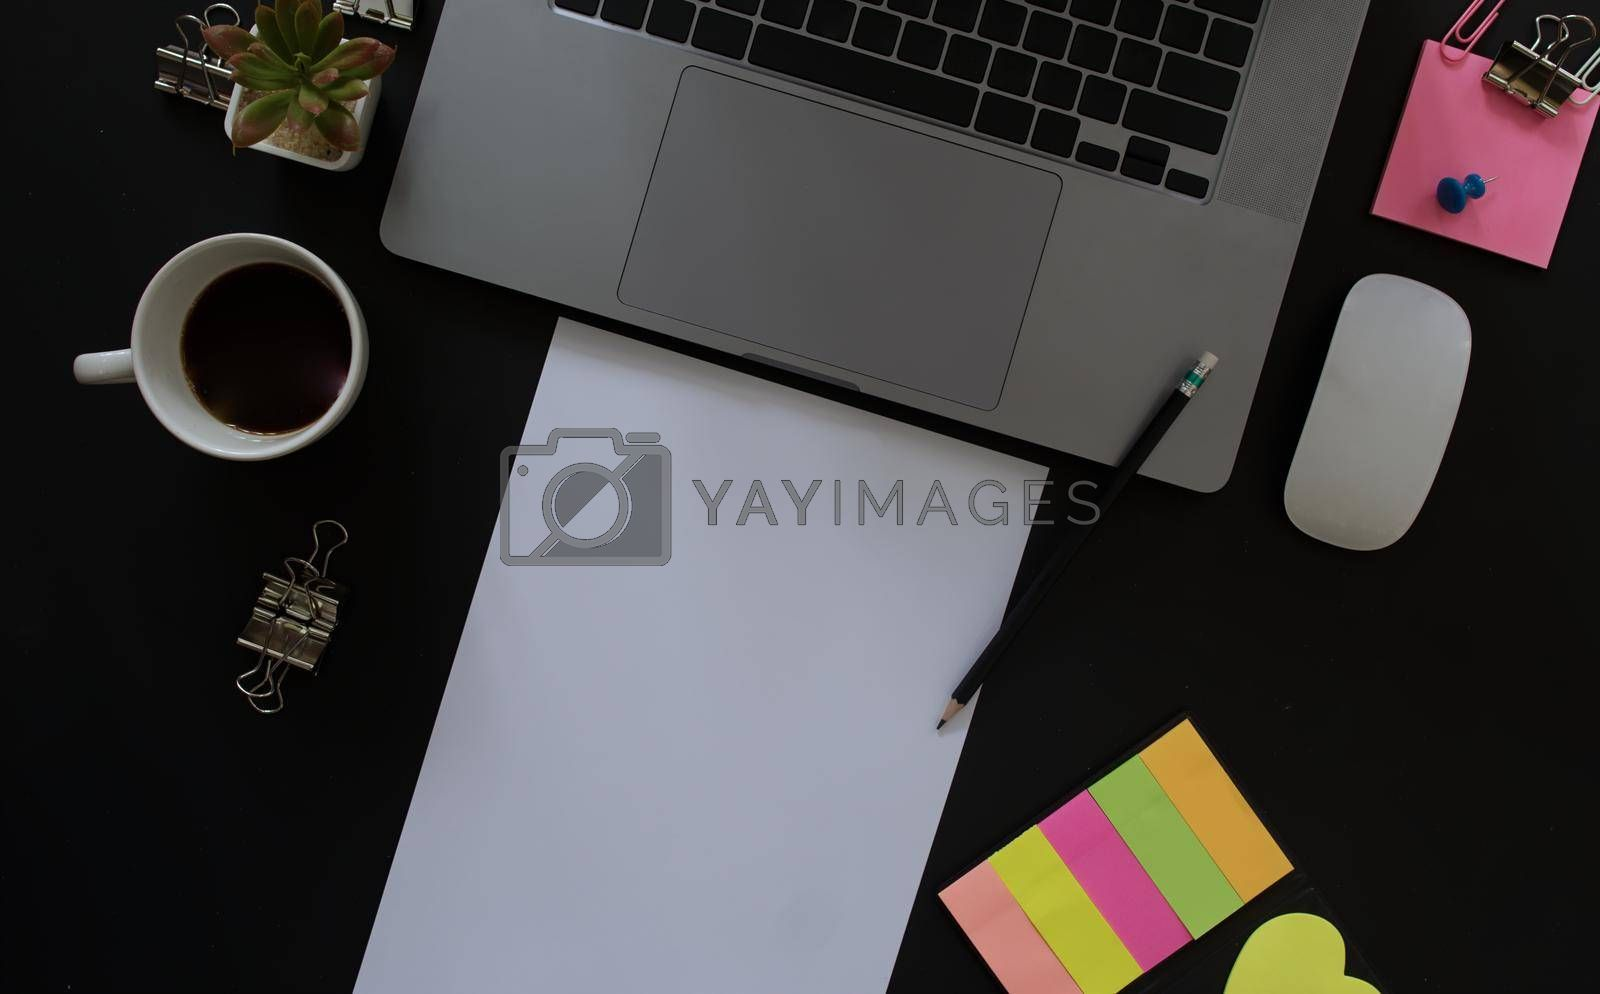 Royalty free image of Business desk with laptop and memo paper placed on a black background, including a copy area to add text or graphics. by noppha80